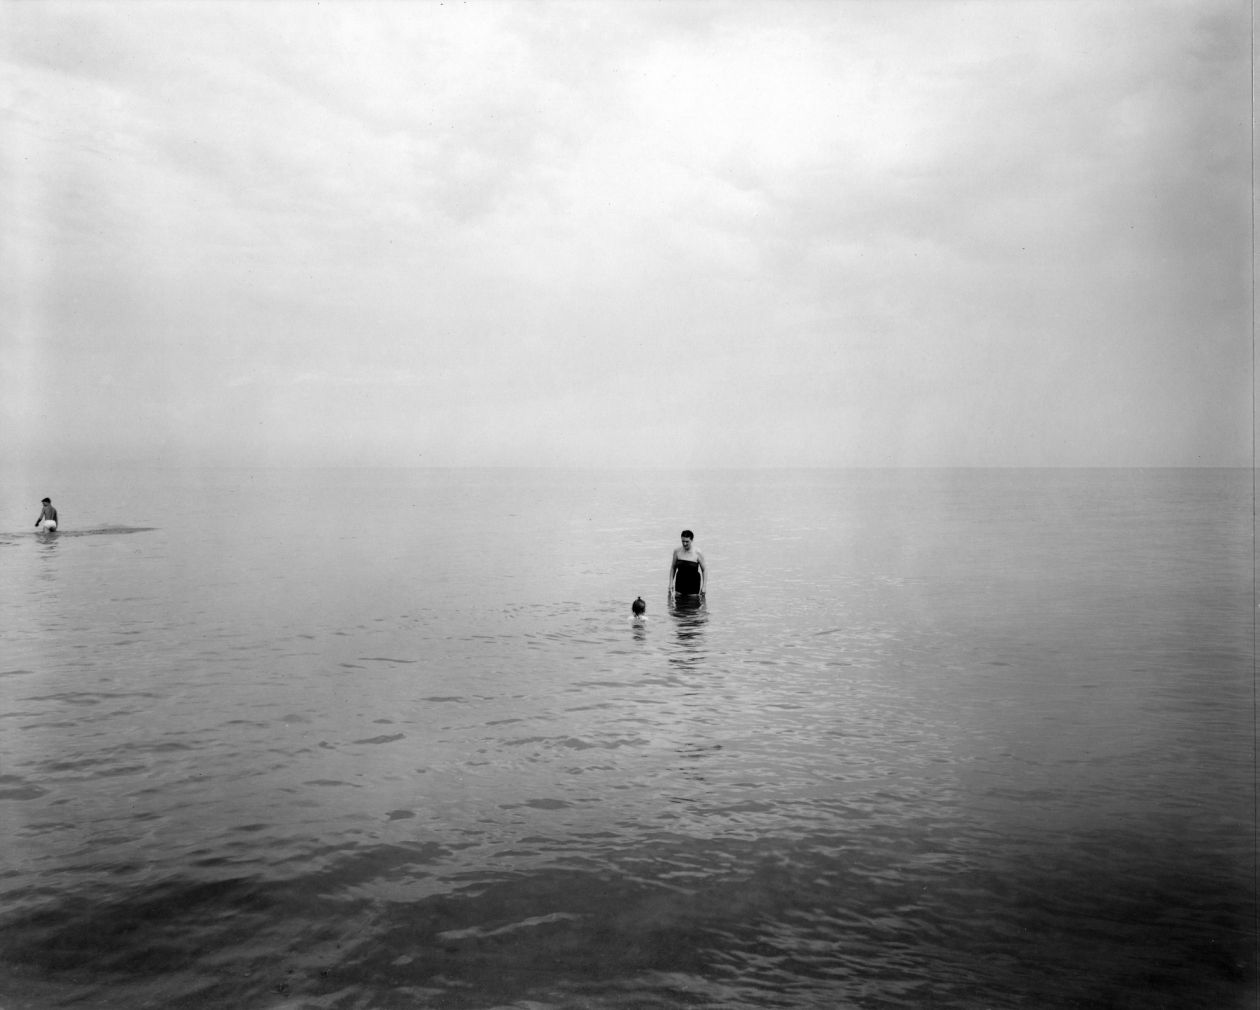 Lake Michigan (1953) by Harry Callahan